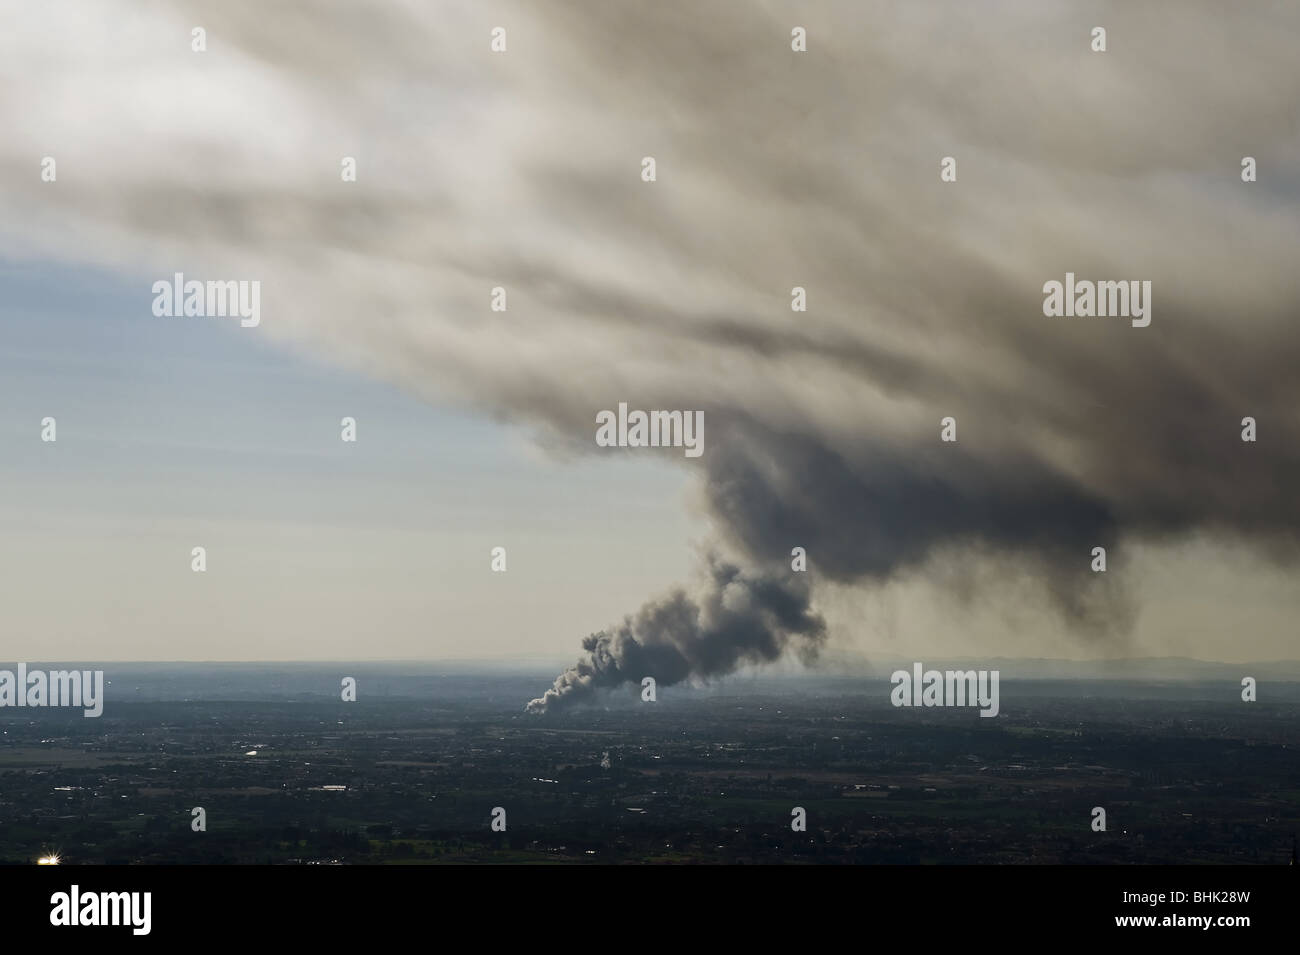 Smoke from a fire in the distance Stock Photo